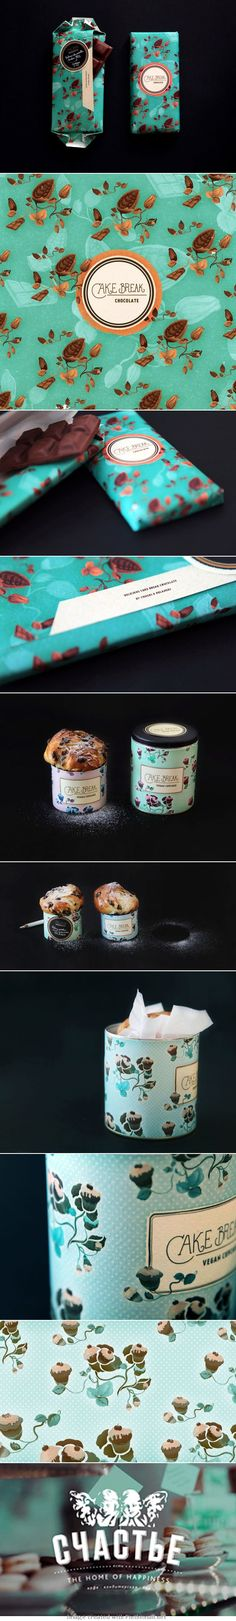 Let's take cake and coffee break #packaging curated by Packaging Diva PD - created via http://wtpack.ru/daily/tomski-polanski/